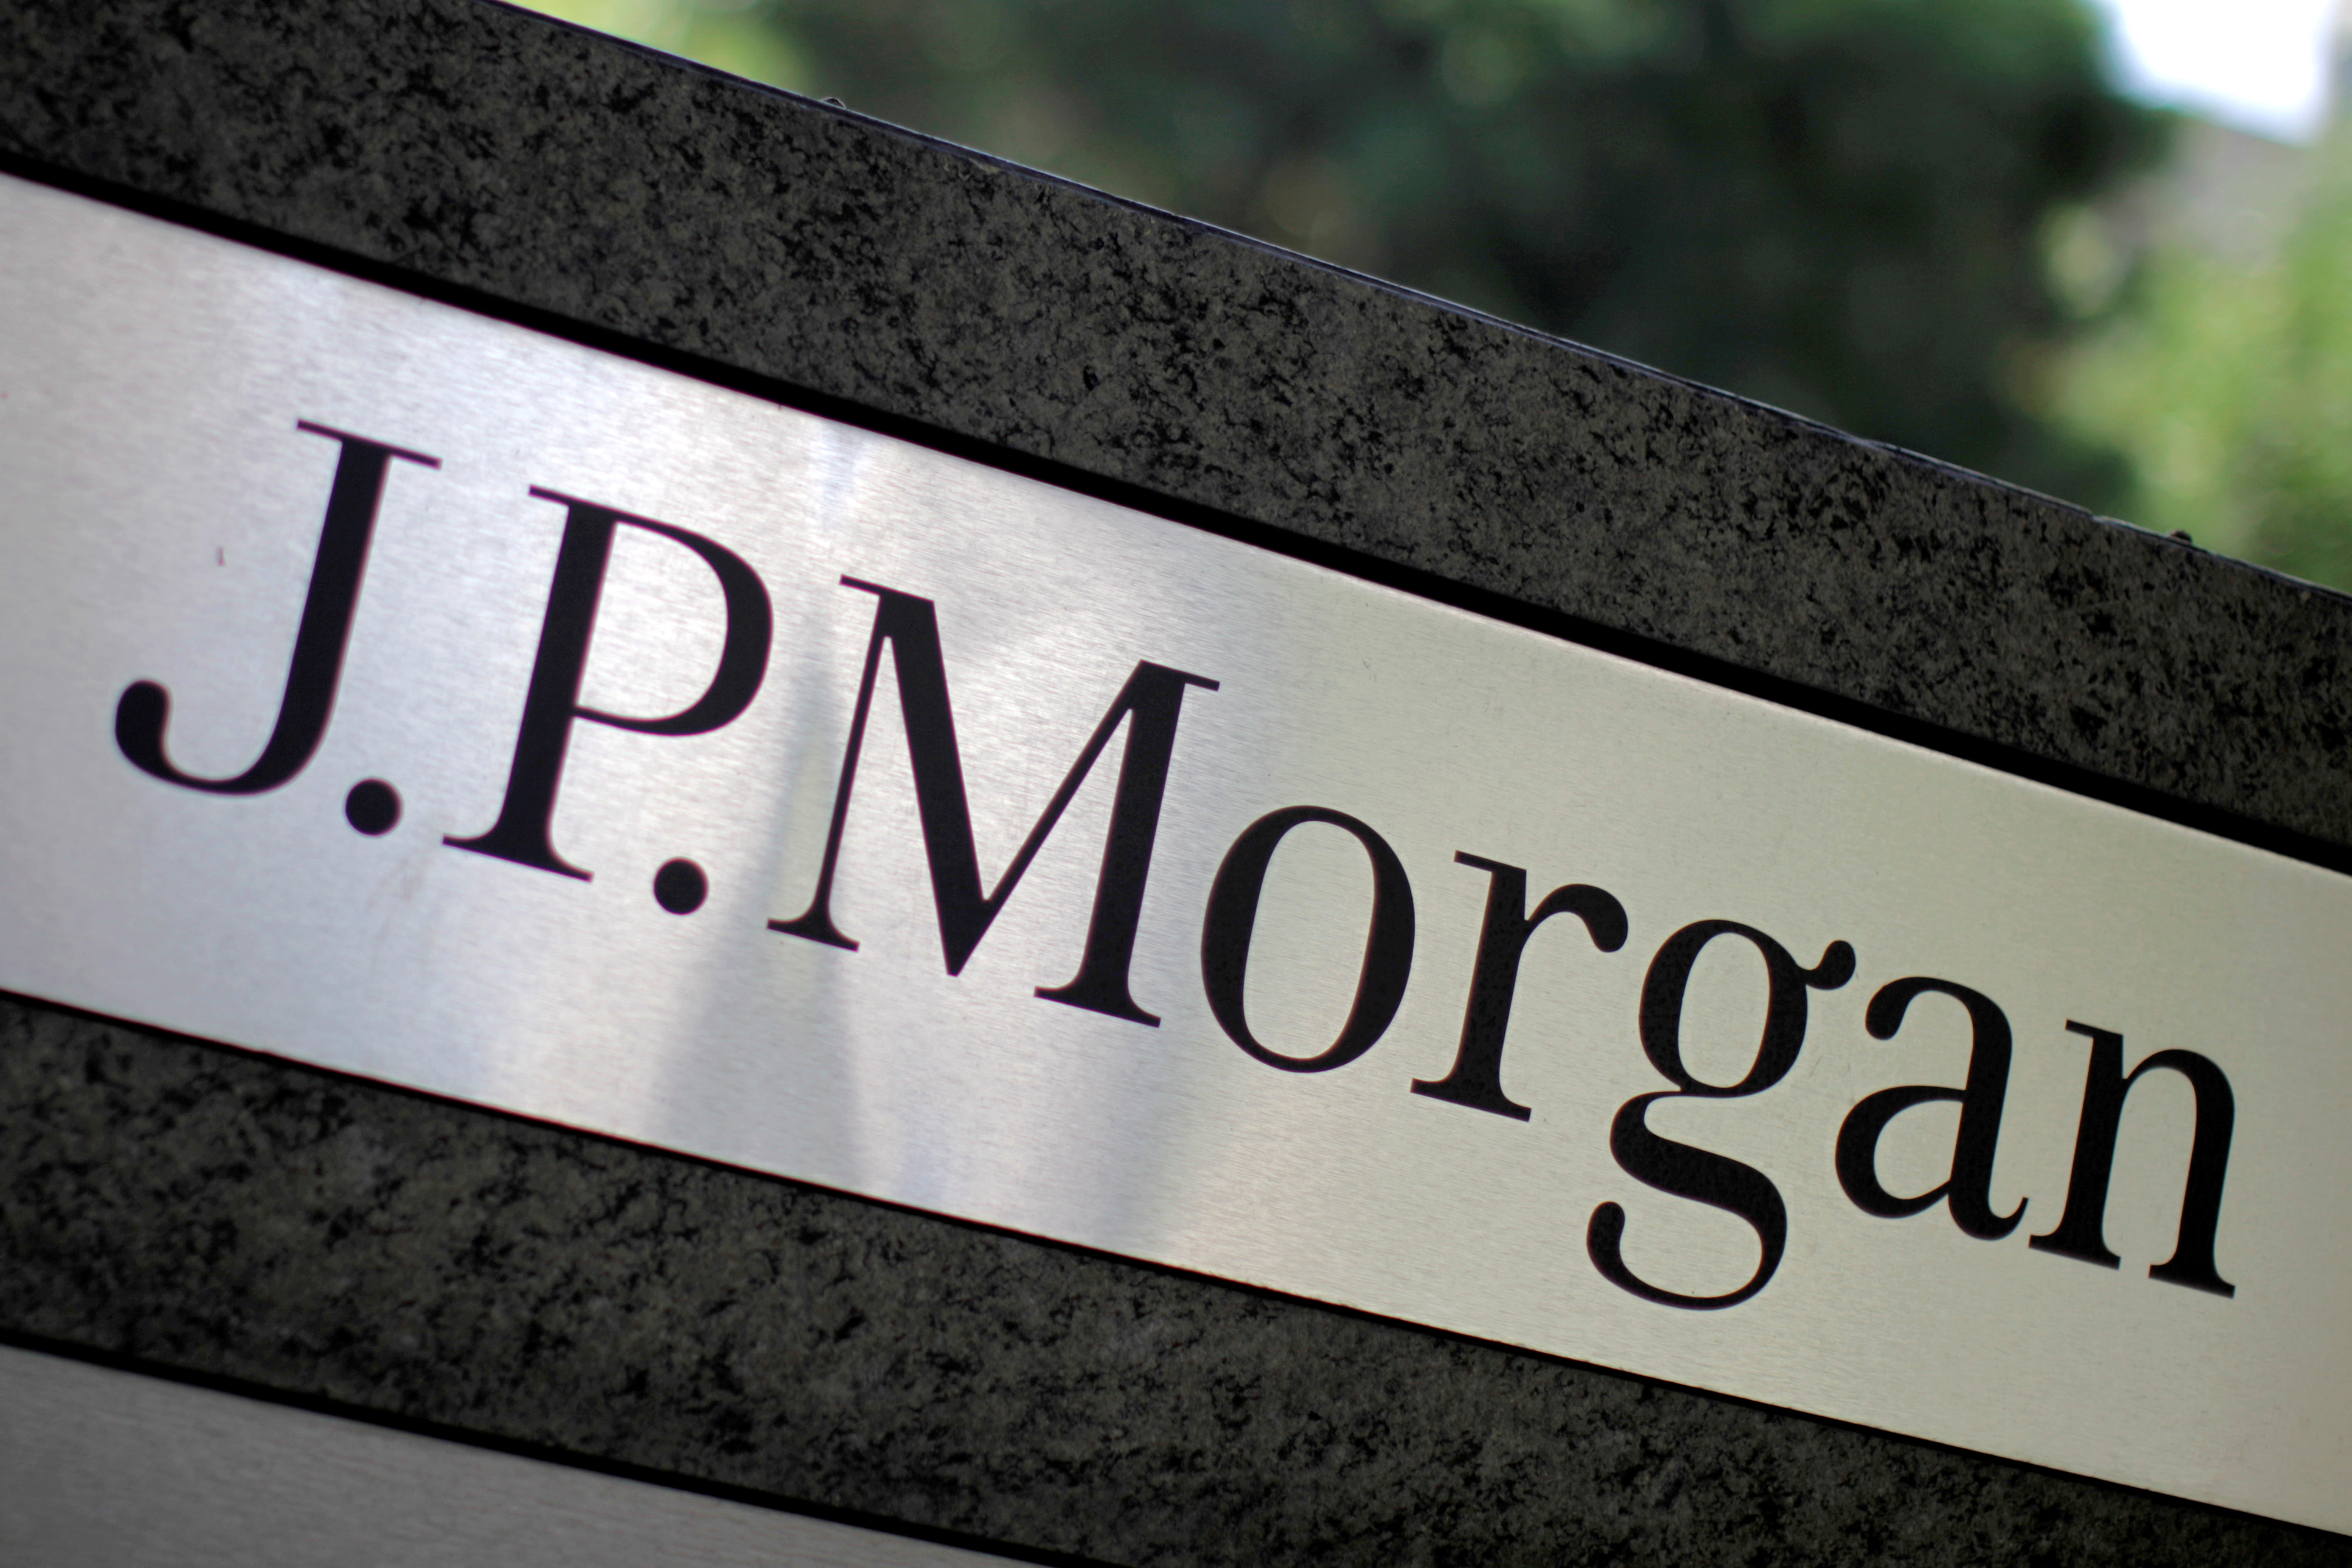 The logo of JPMorgan is seen in Los Angeles, California, United States, on October 12, 2010. REUTERS/Lucy Nicholson/File Photo